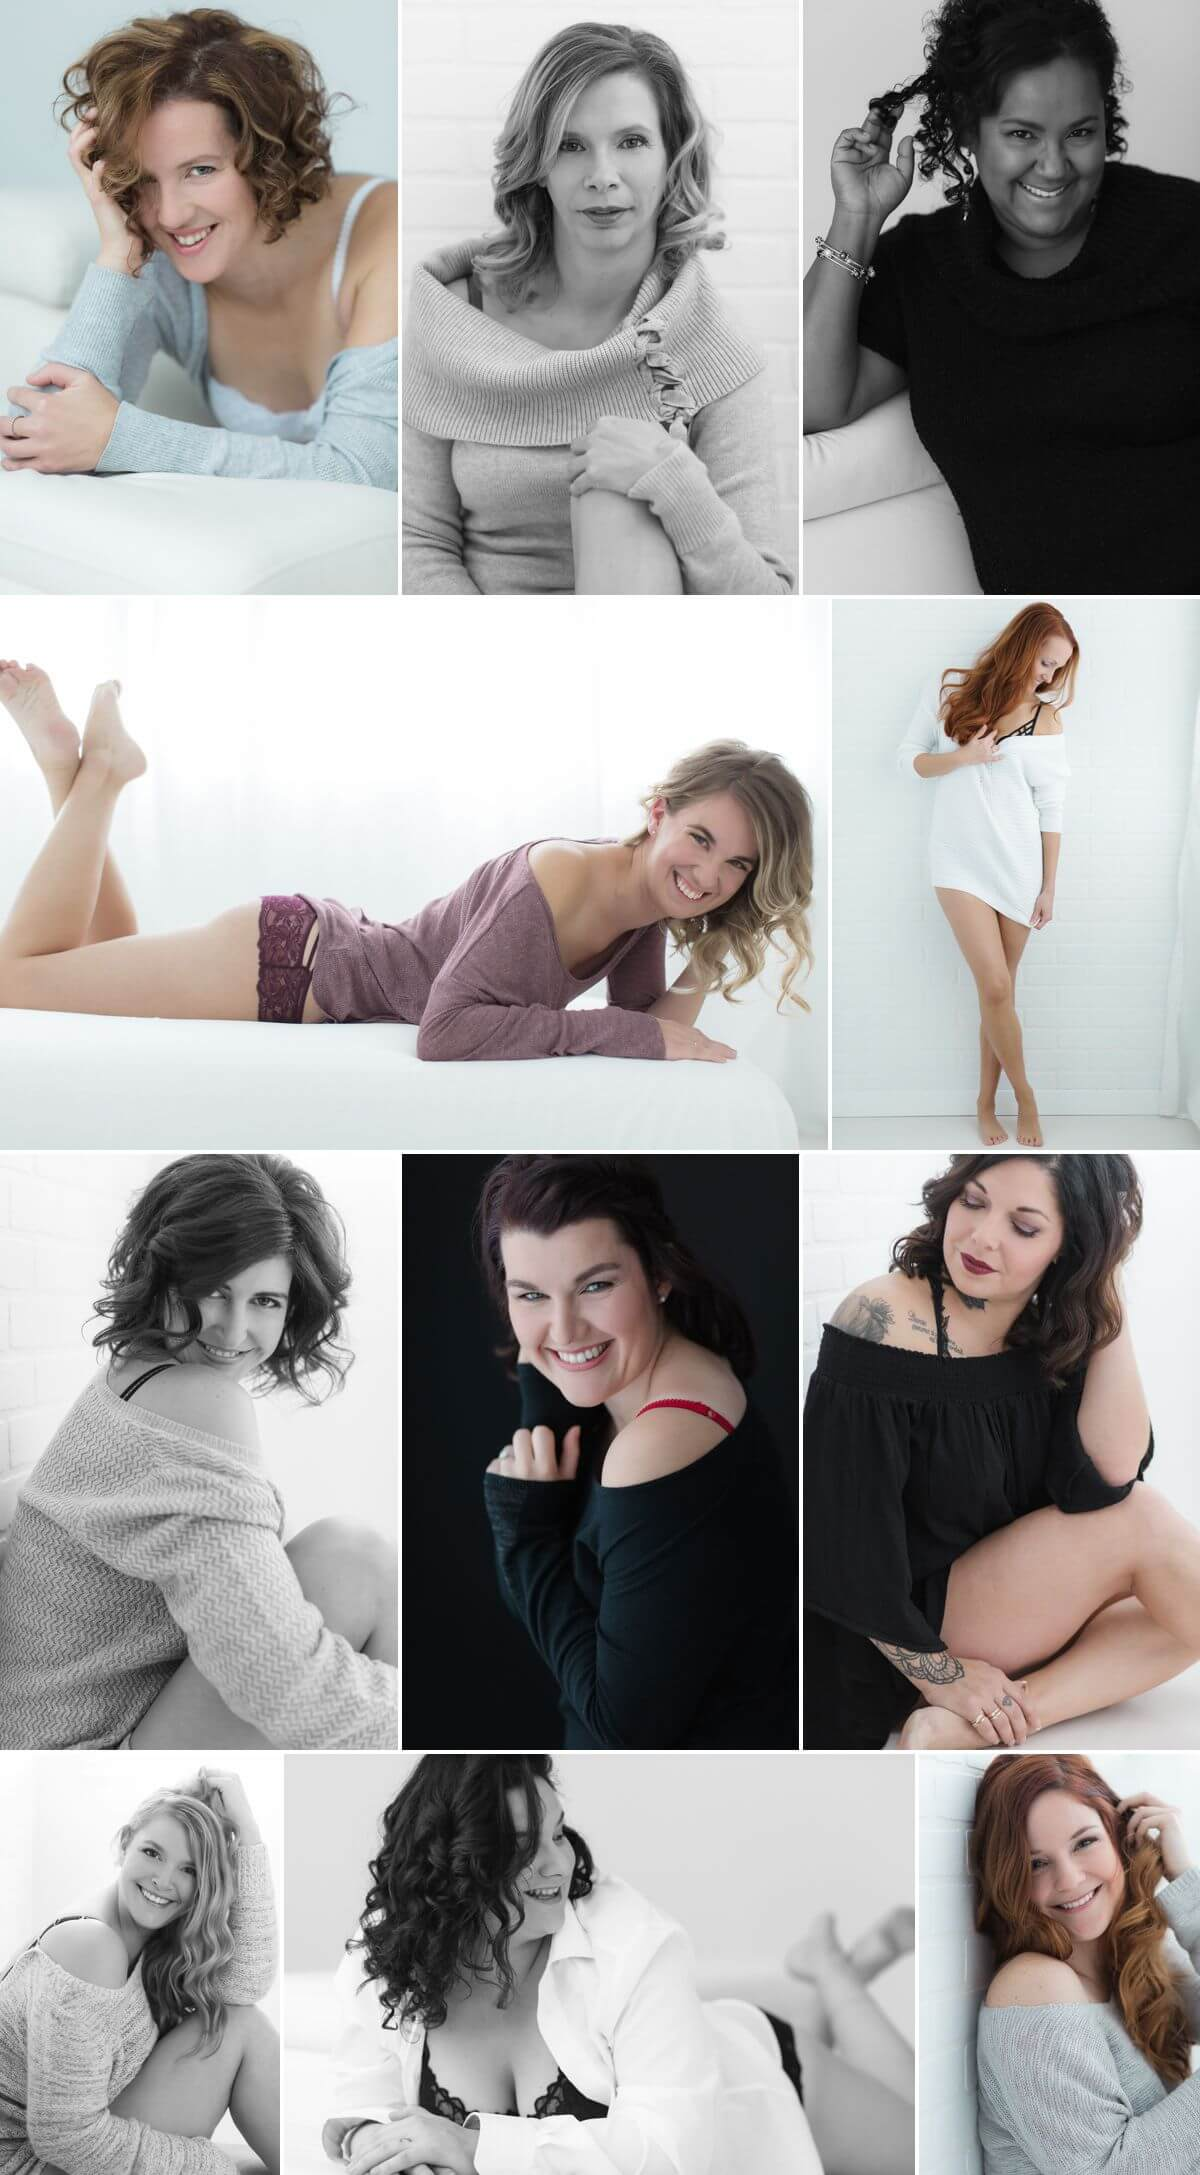 Seance photo boudoir professionnelle